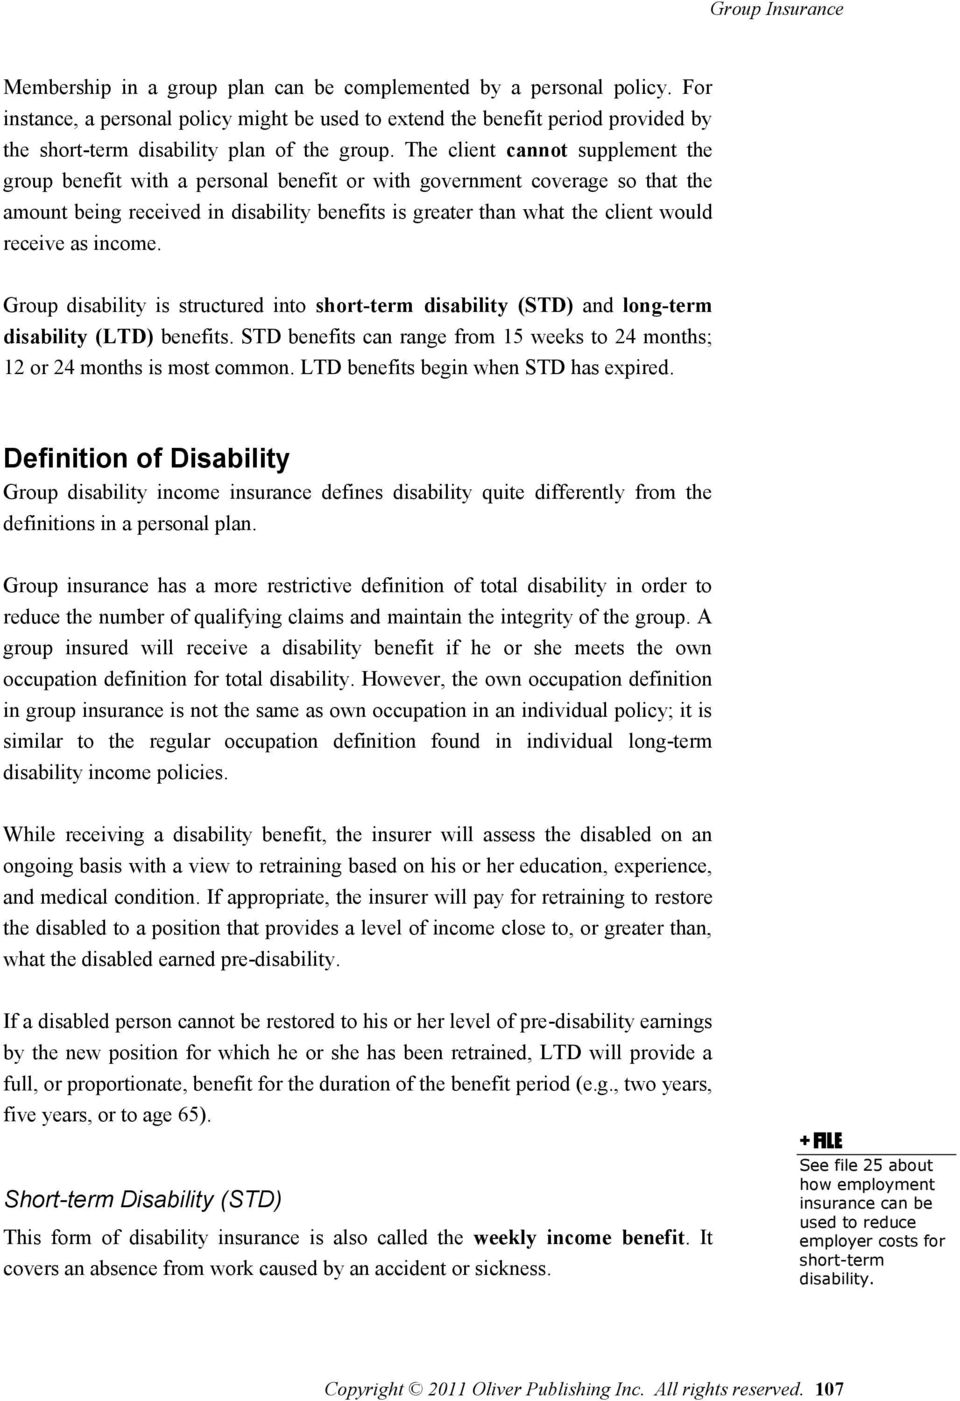 The client cannot supplement the group benefit with a personal benefit or with government coverage so that the amount being received in disability benefits is greater than what the client would